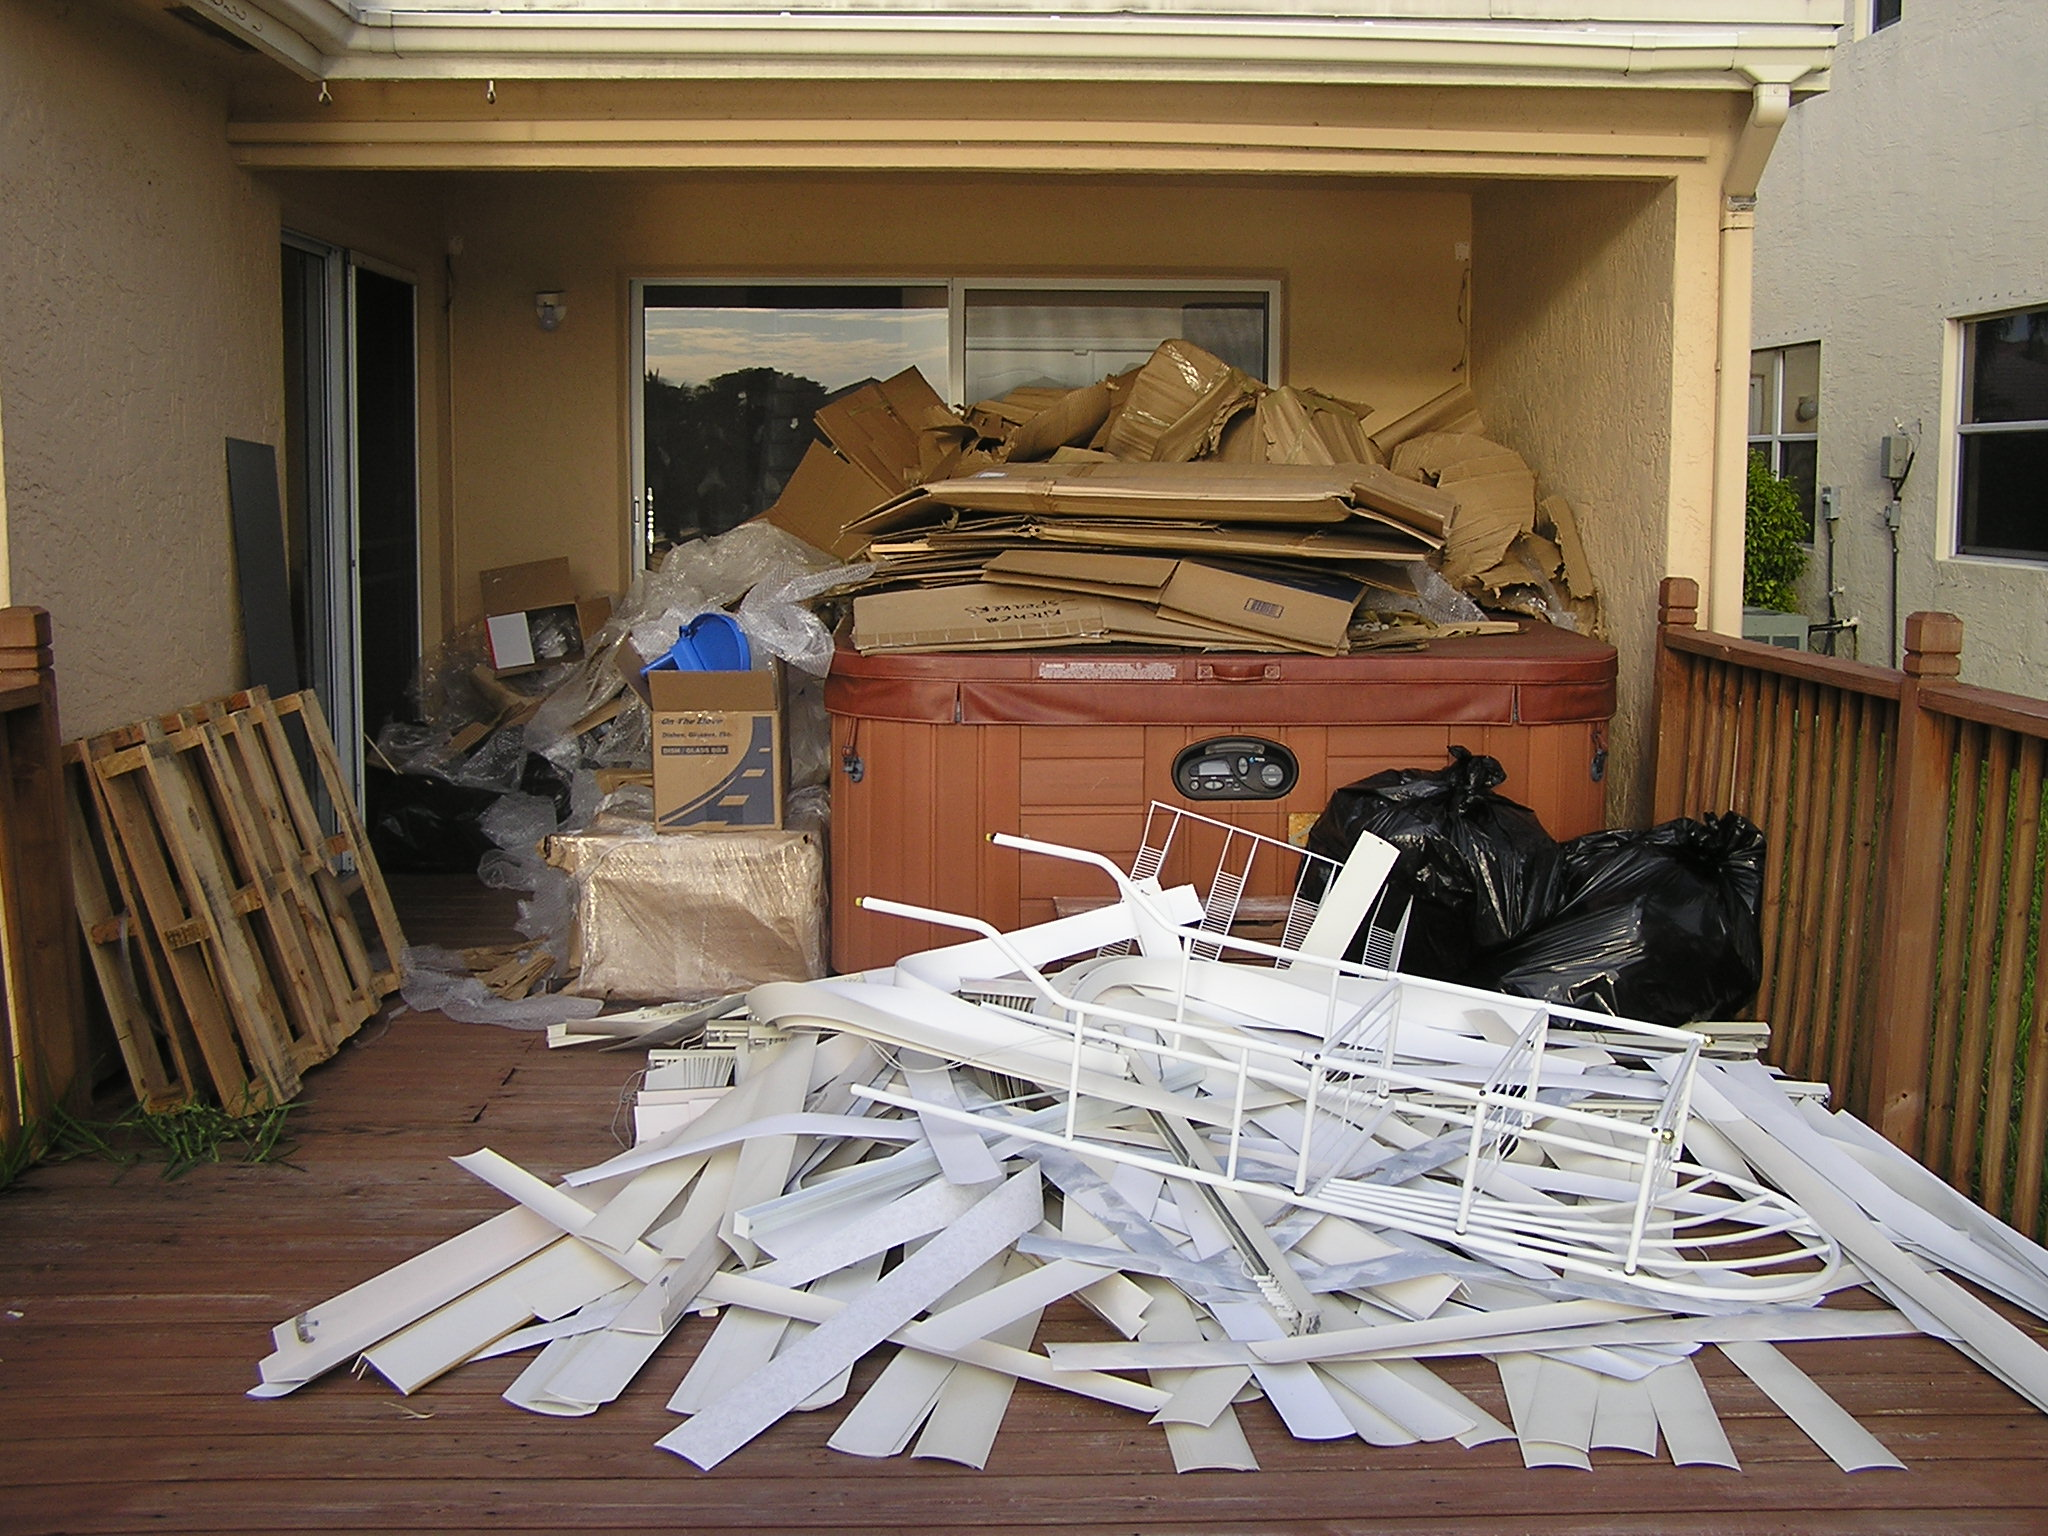 Junk Removal Amp Hauling In Fort Lauderdale Fl 954 633 8288